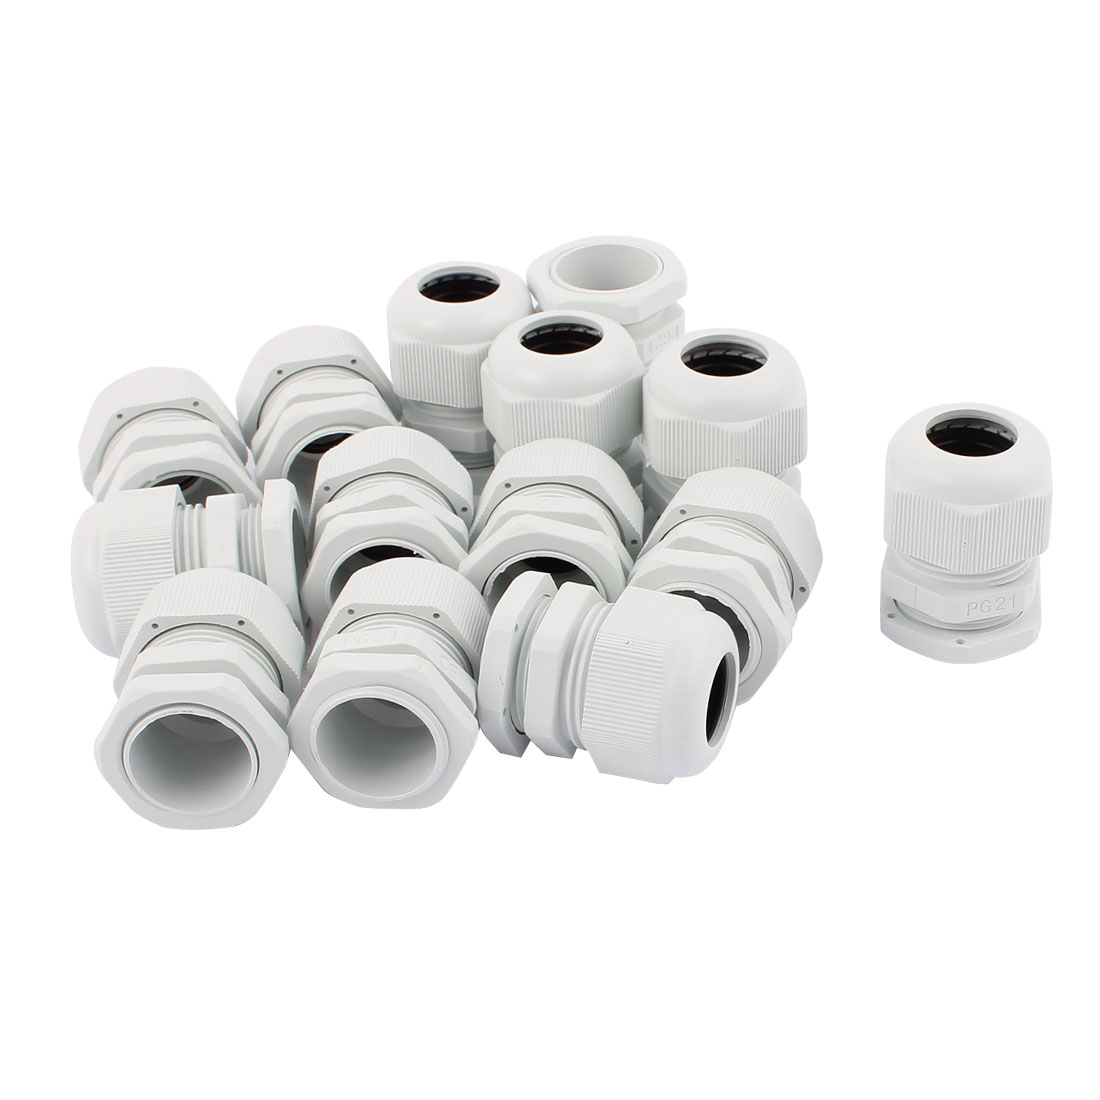 14 PCS PG21 13-18mm Range Waterproof Cable Glands Fixing Cord Connect Adapter White